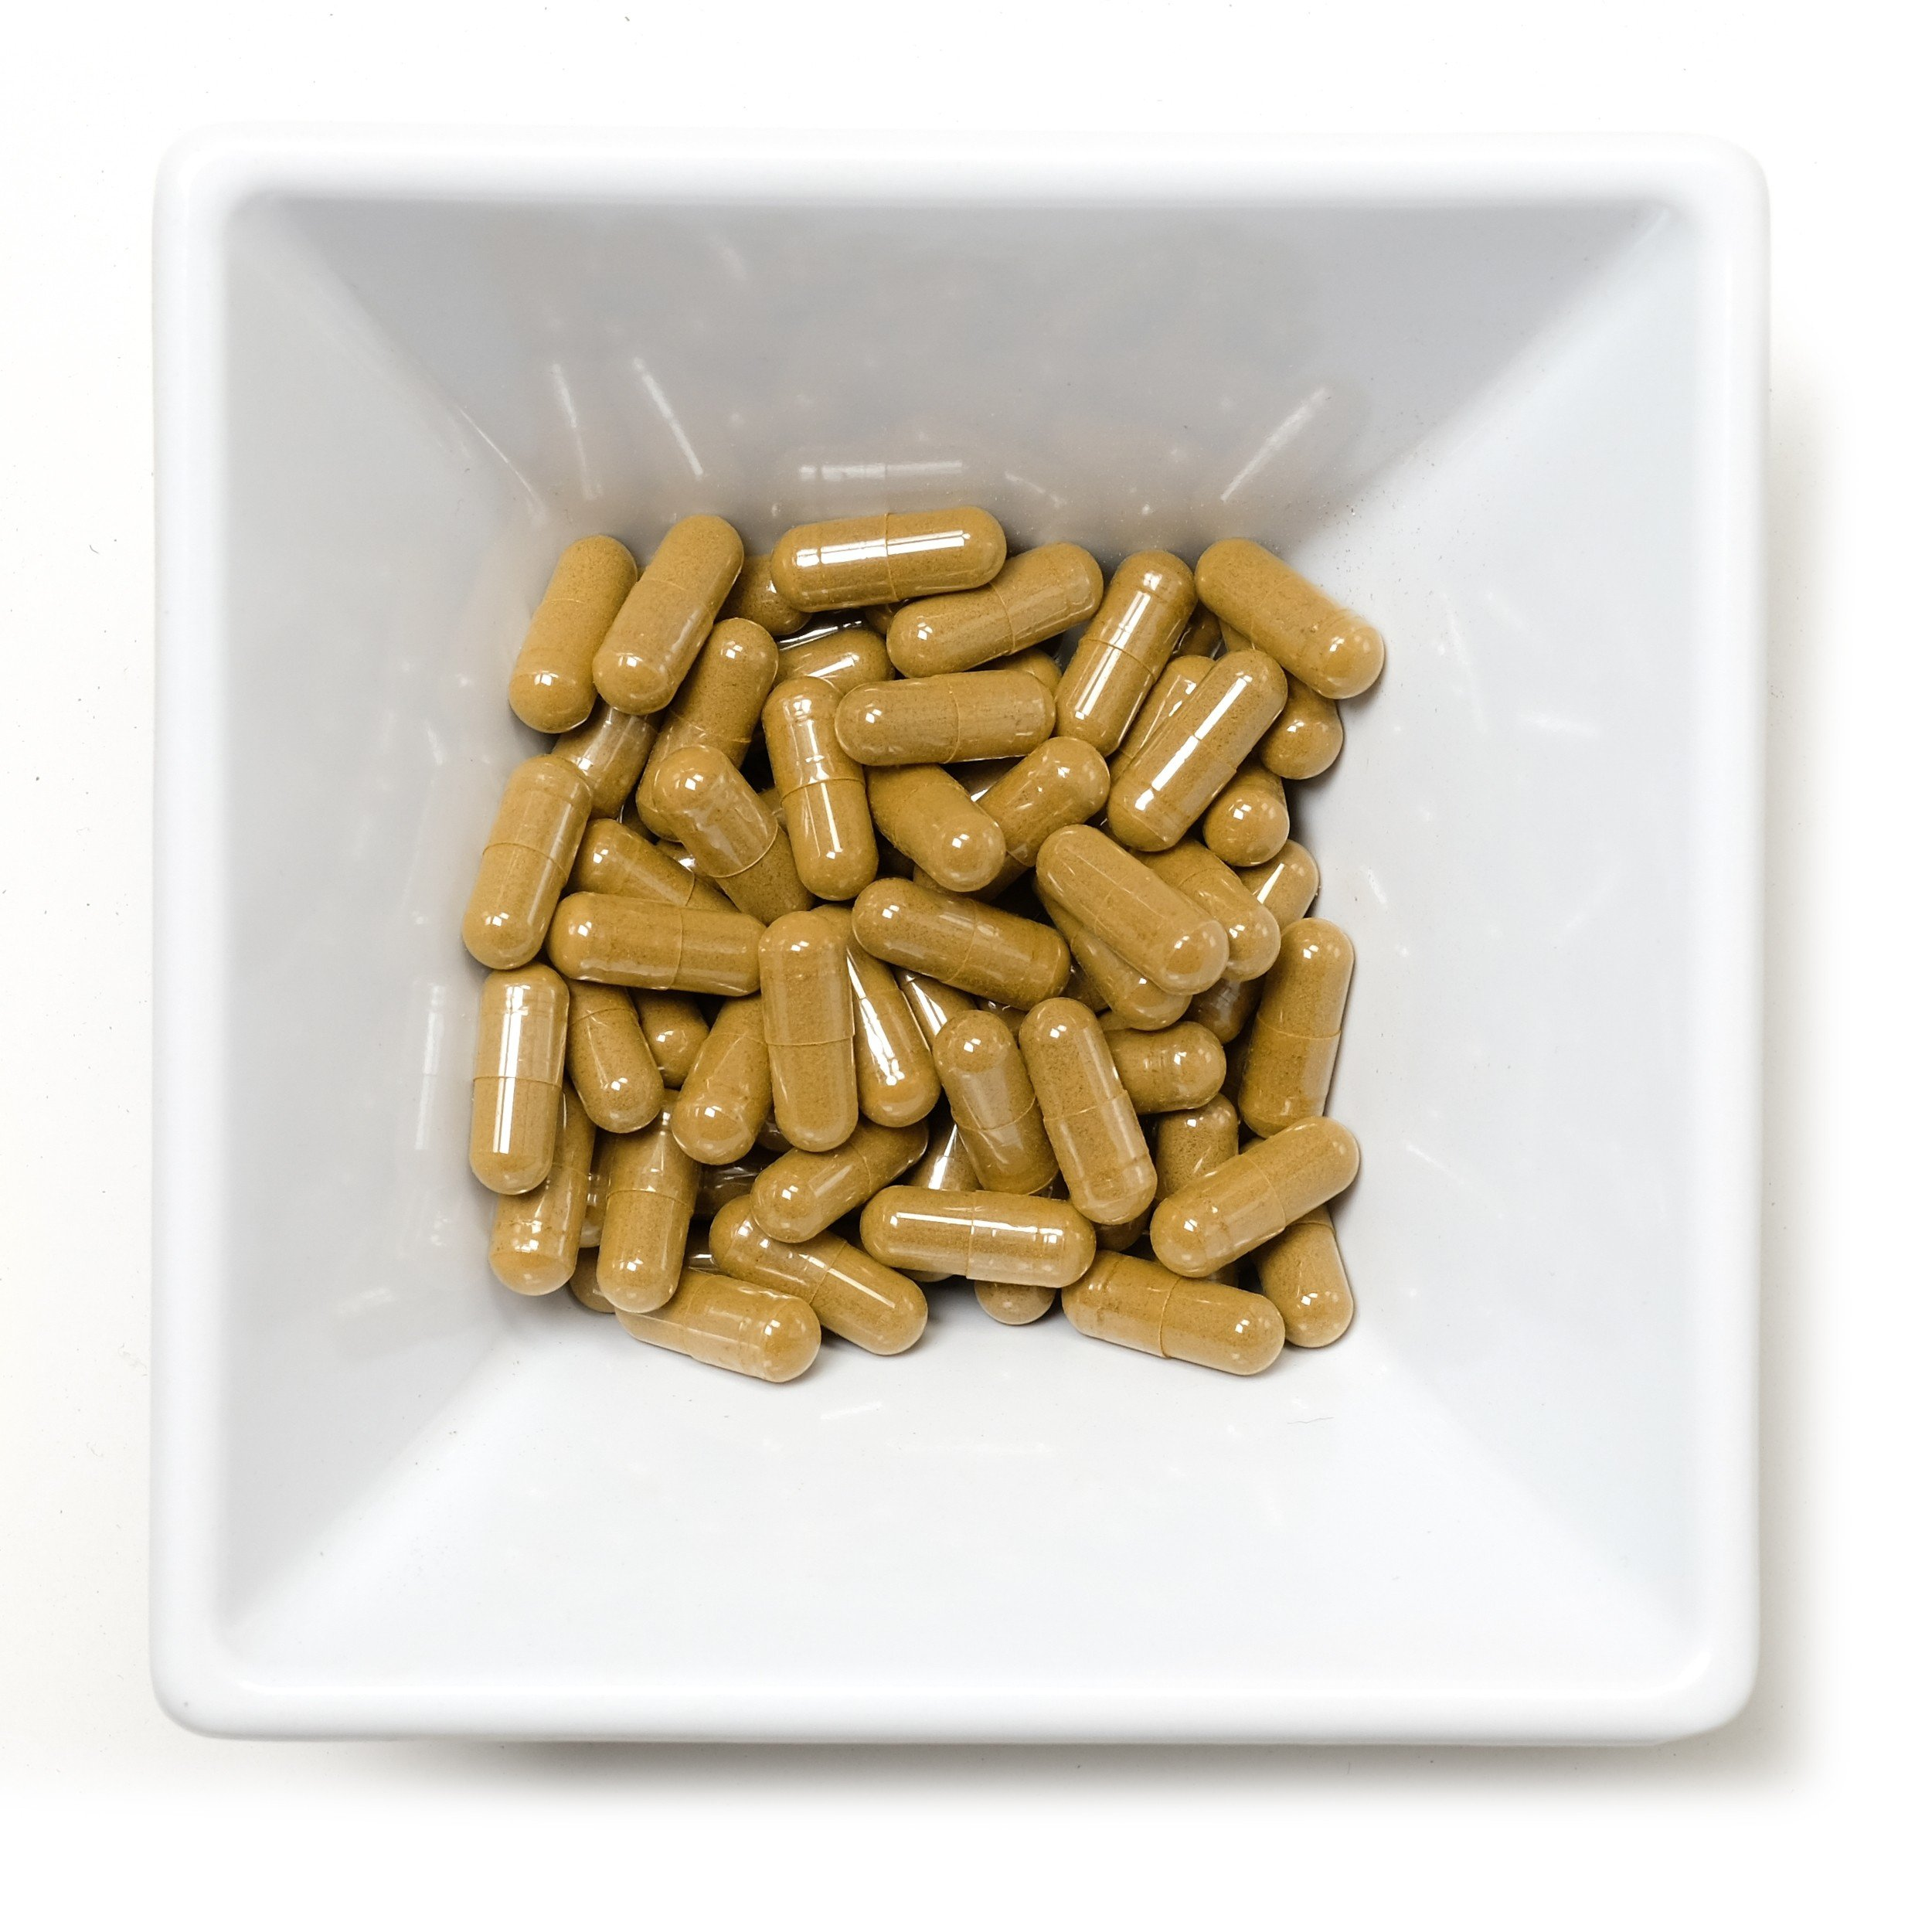 Kraken Gold Tea Capsules